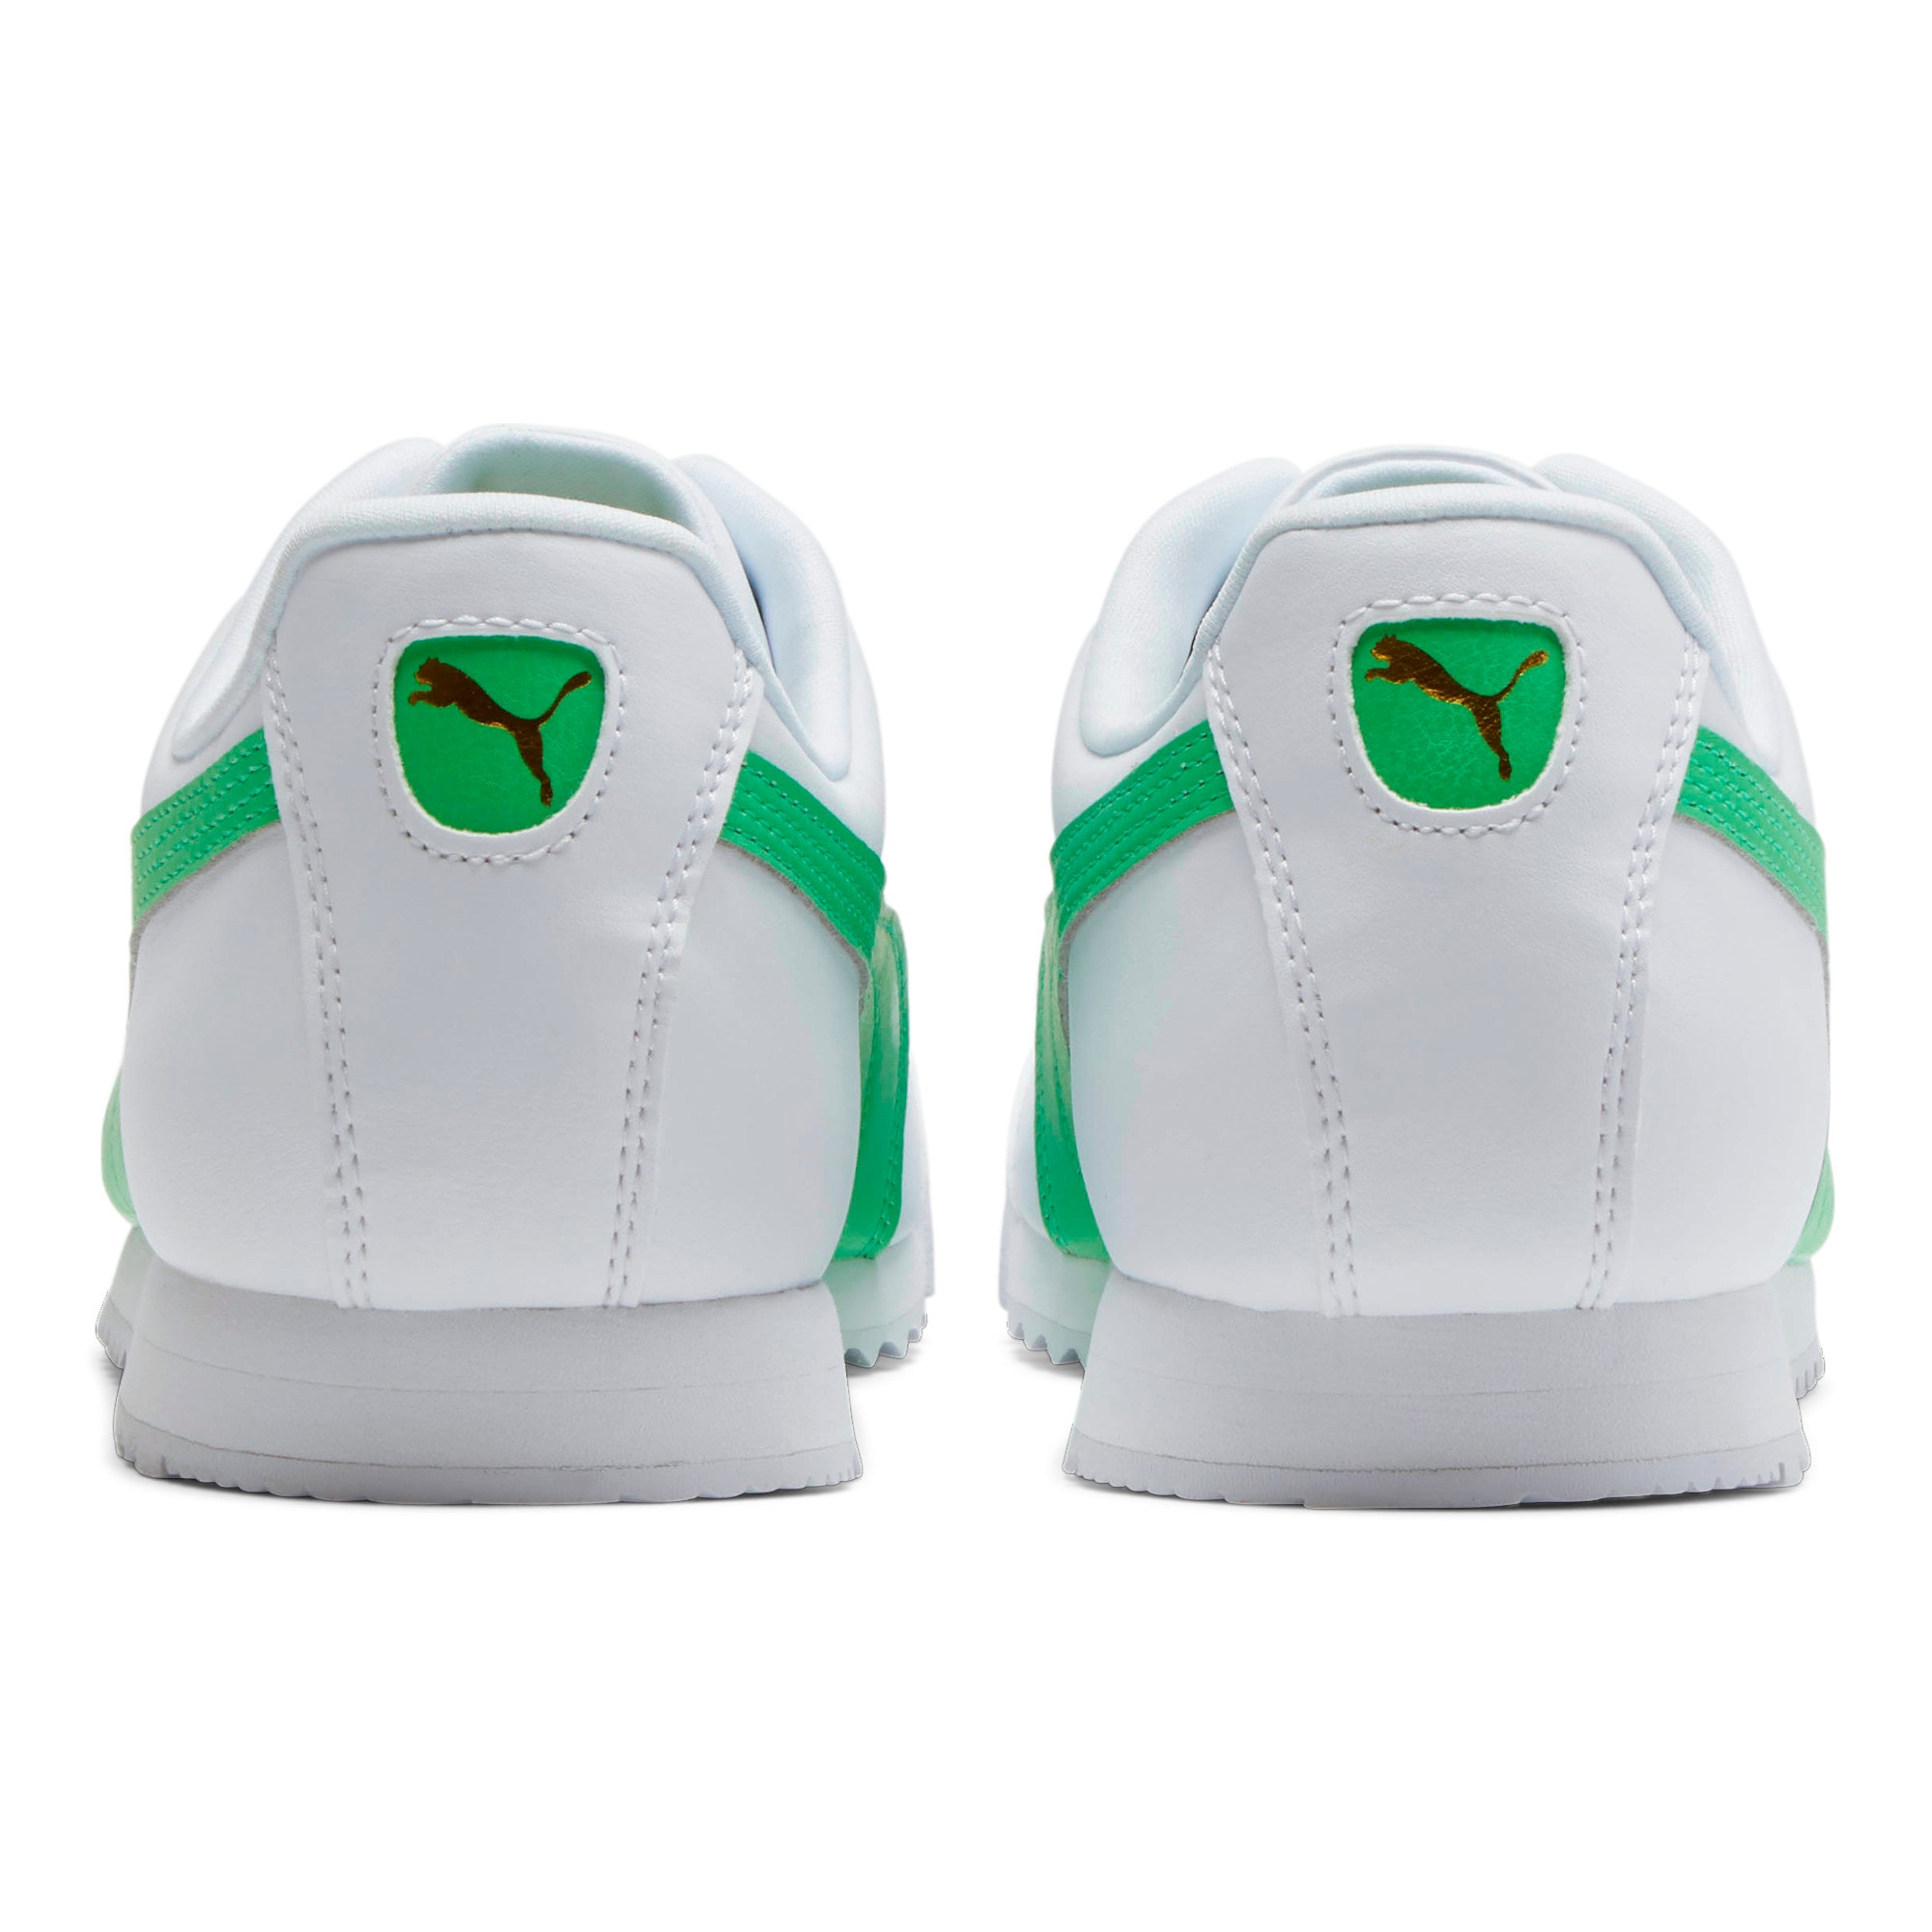 Miniatura 3 de Zapatos deportivos Roma Basic +, Puma White-Irish Green, mediano